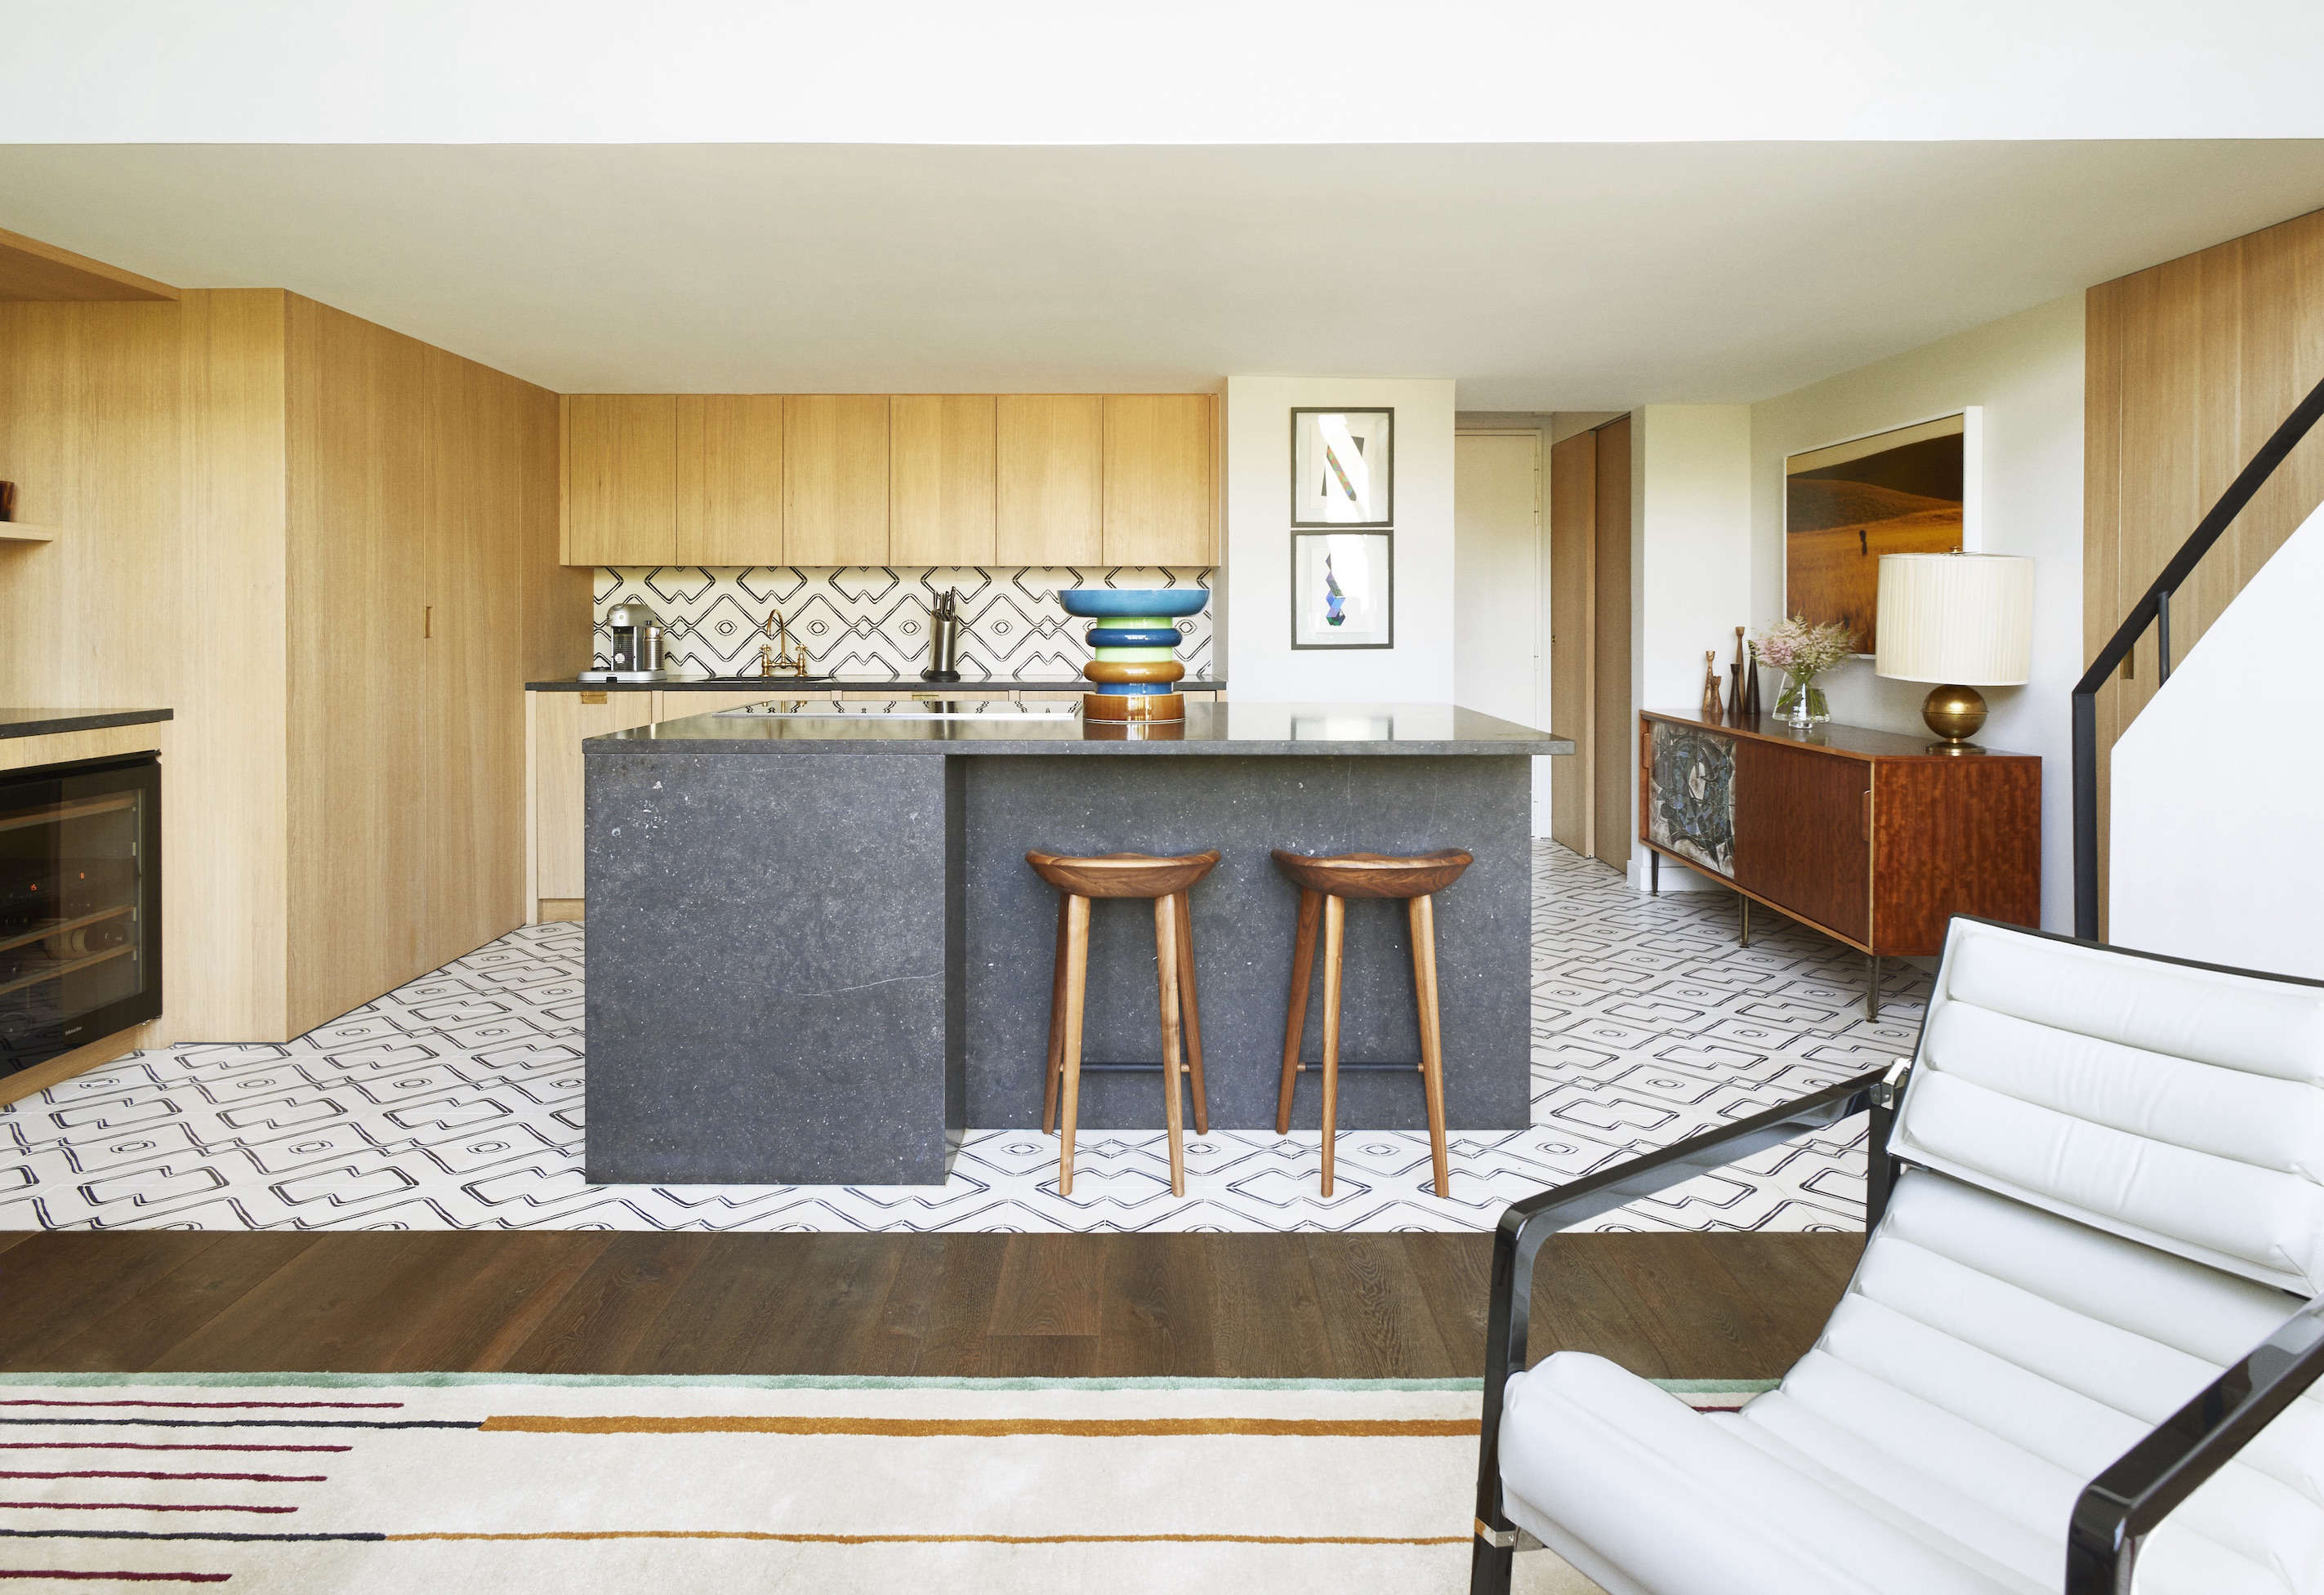 Kitchen of the Week Commune of LA Designs a Culinary